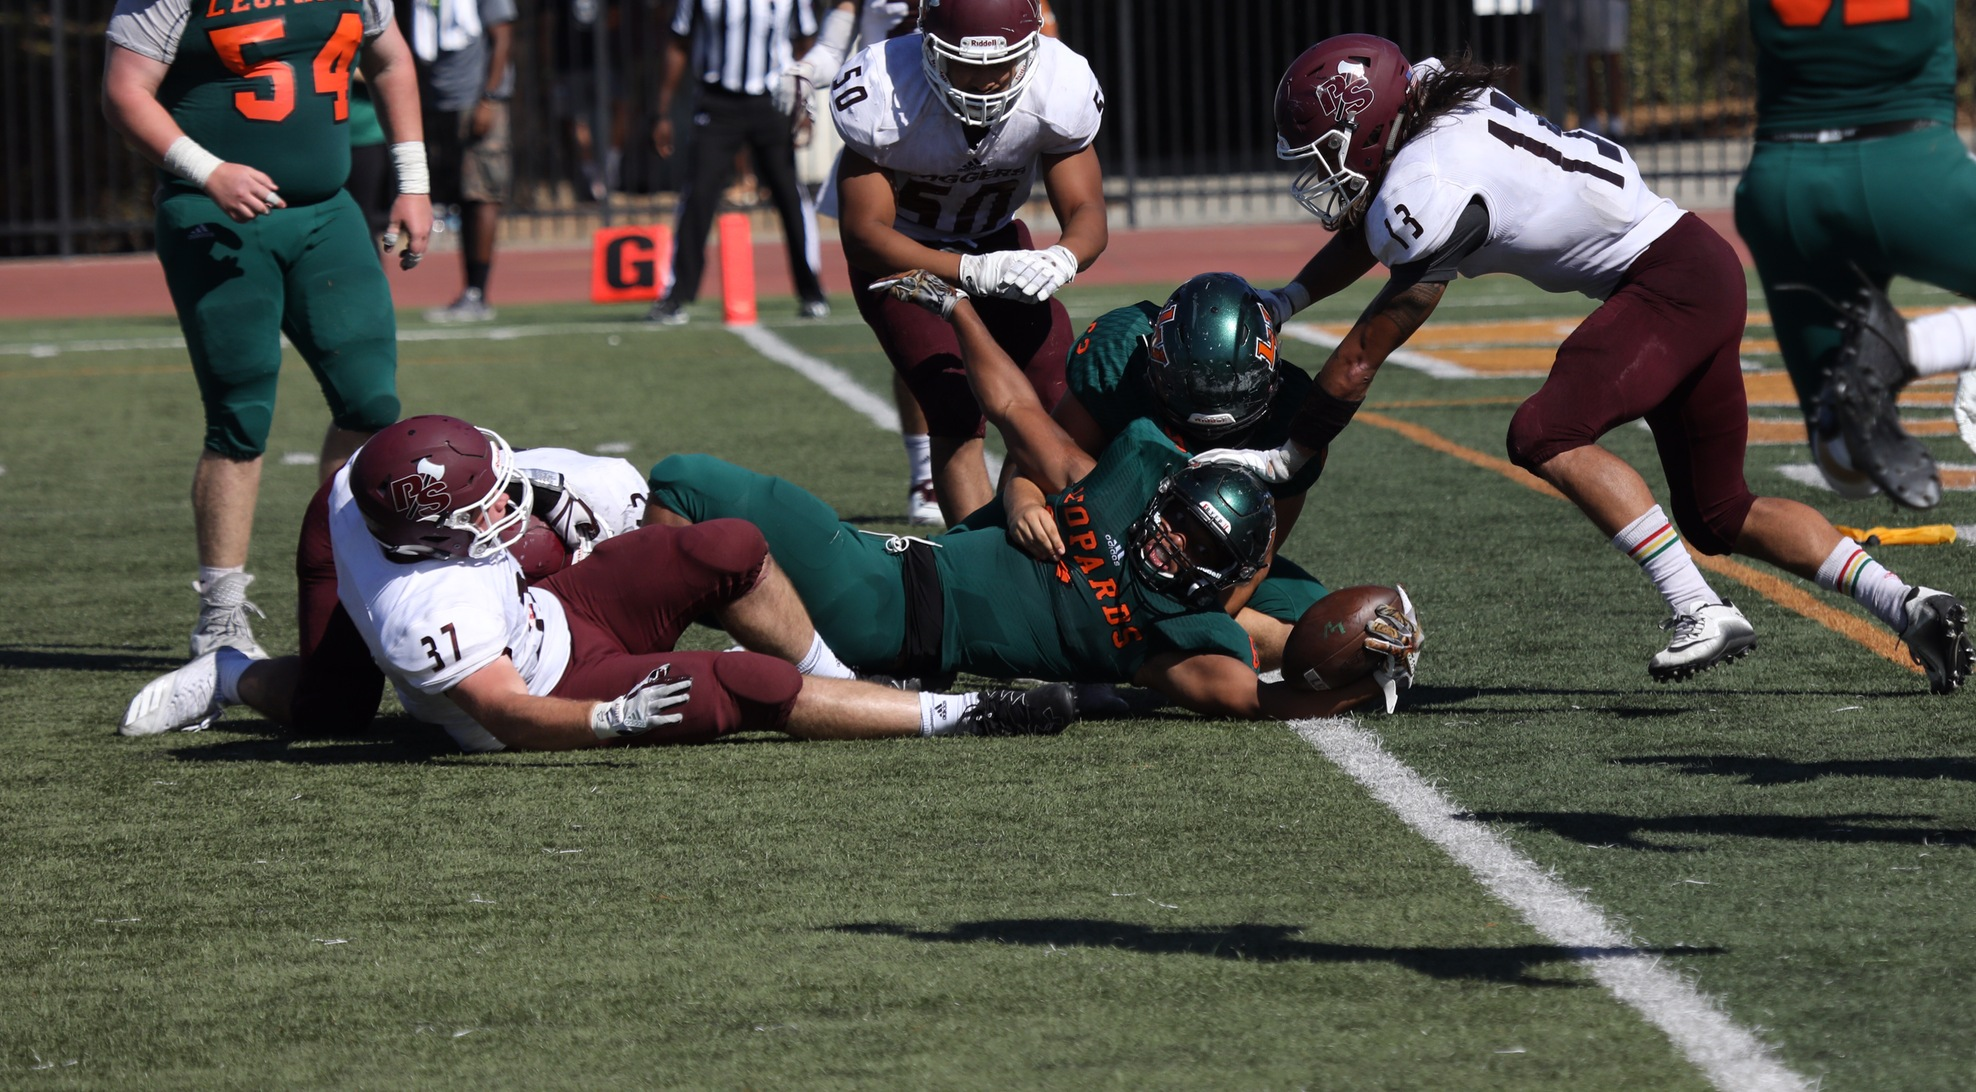 Football falls to Puget Sound at home